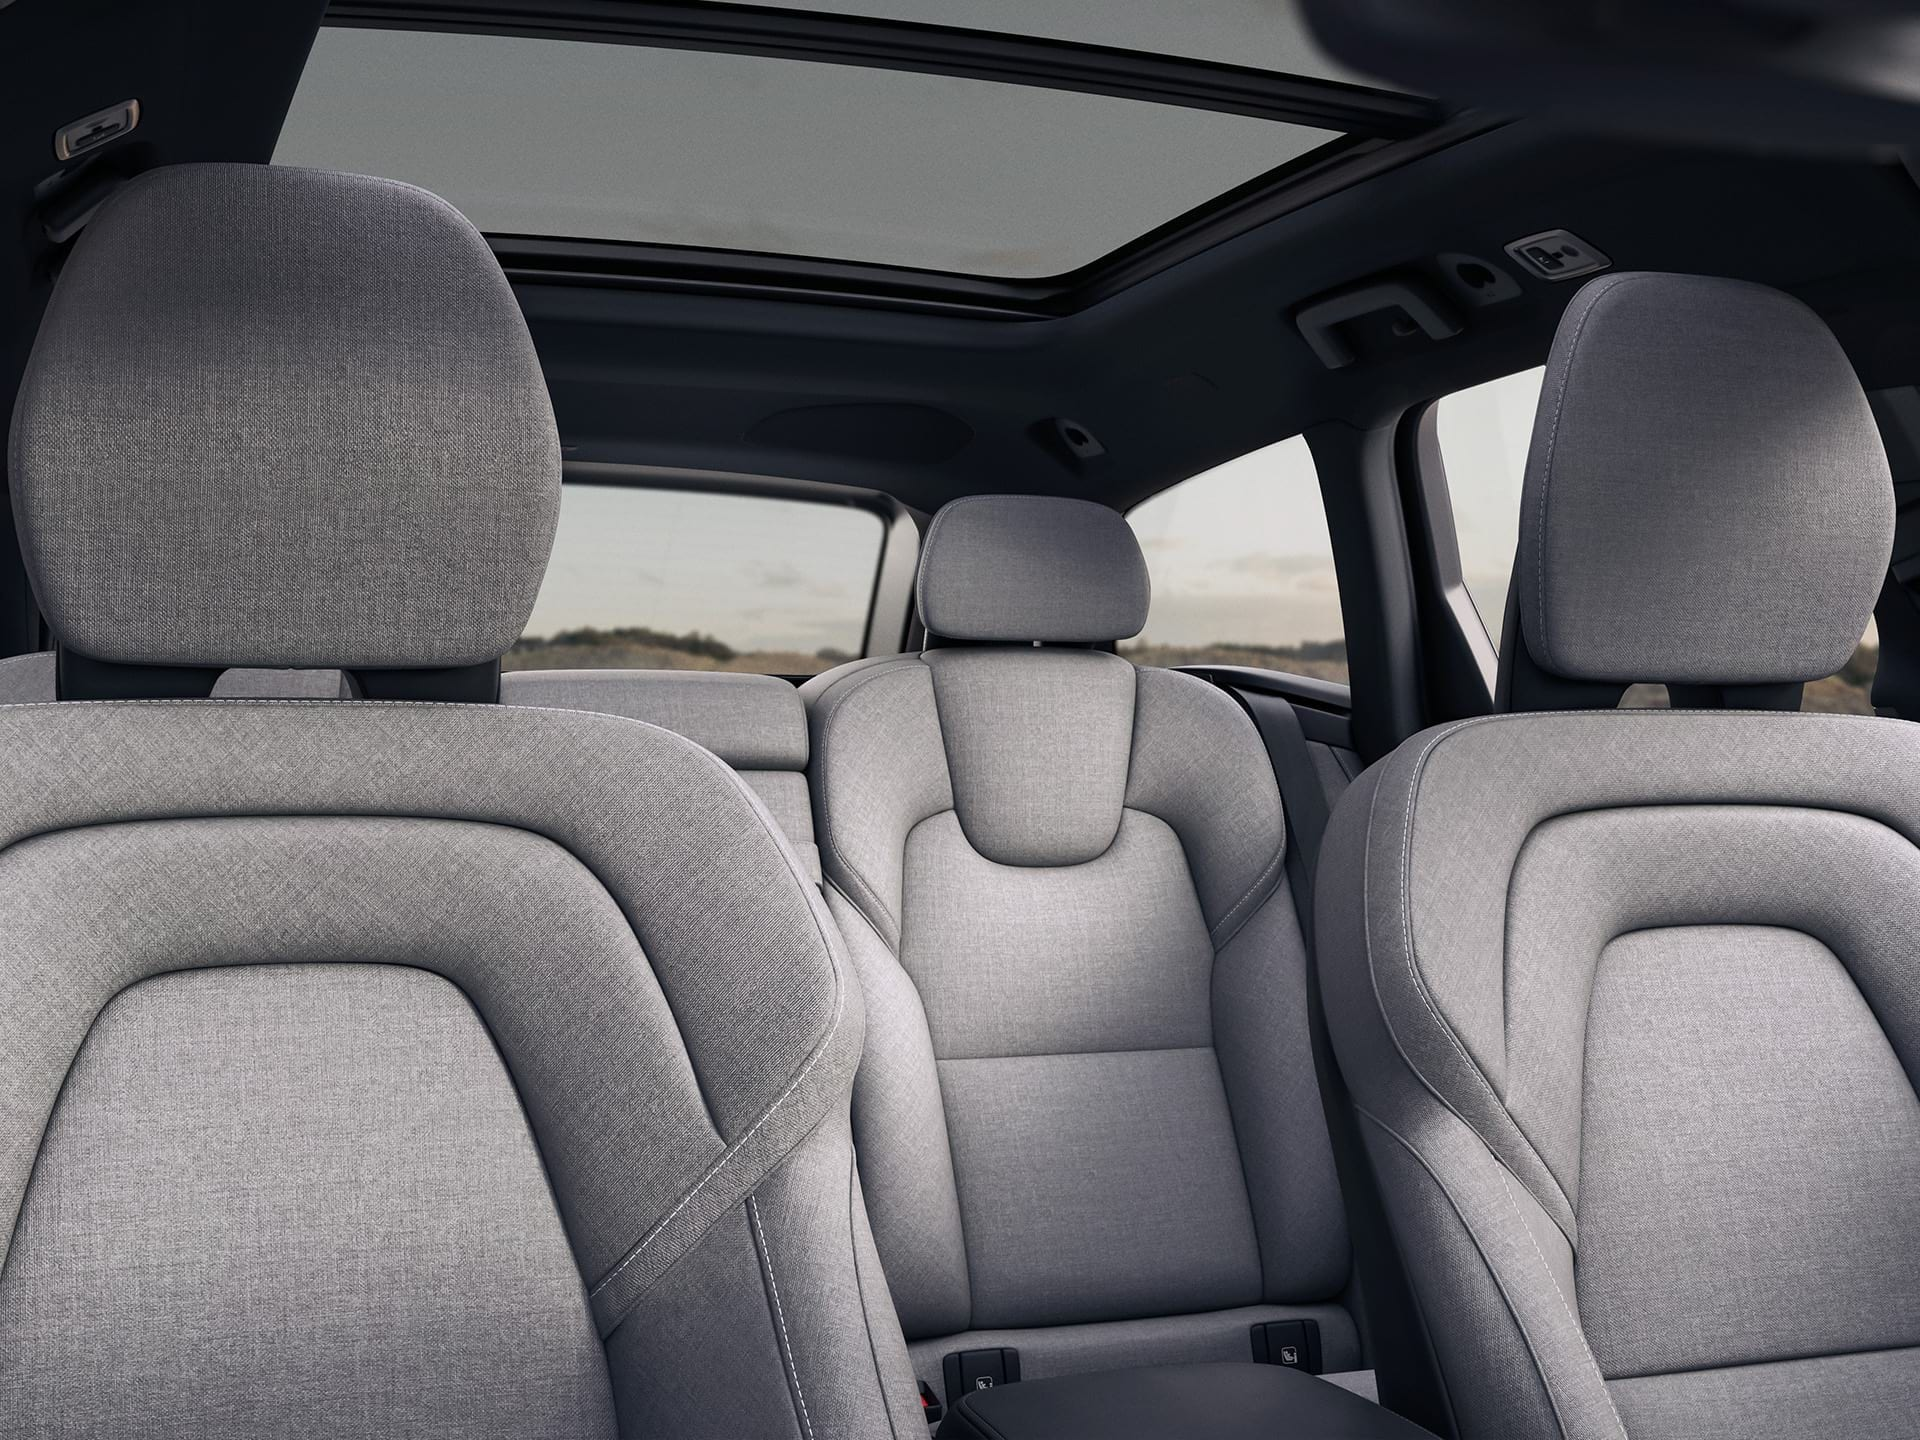 The interior design of a Volvo V90 Recharge, grey wool blend seats.